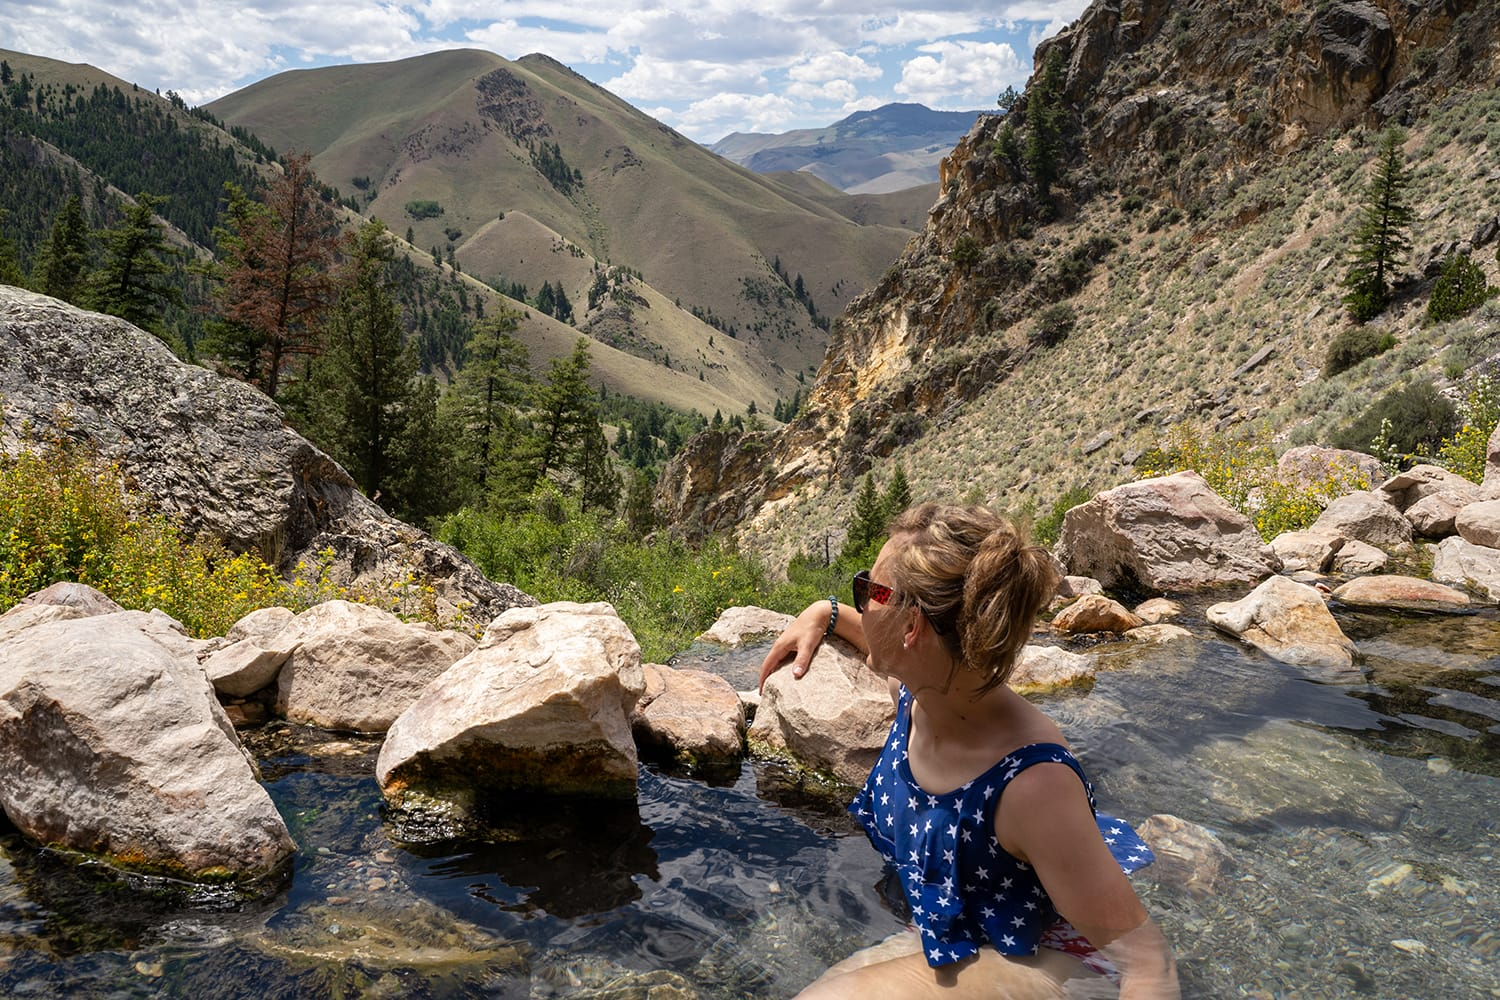 Cute adult woman wearing an American flag swimsut soaks and enjoys the Goldbug Hot Springs in the Salmon Challis National Forest of Idaho